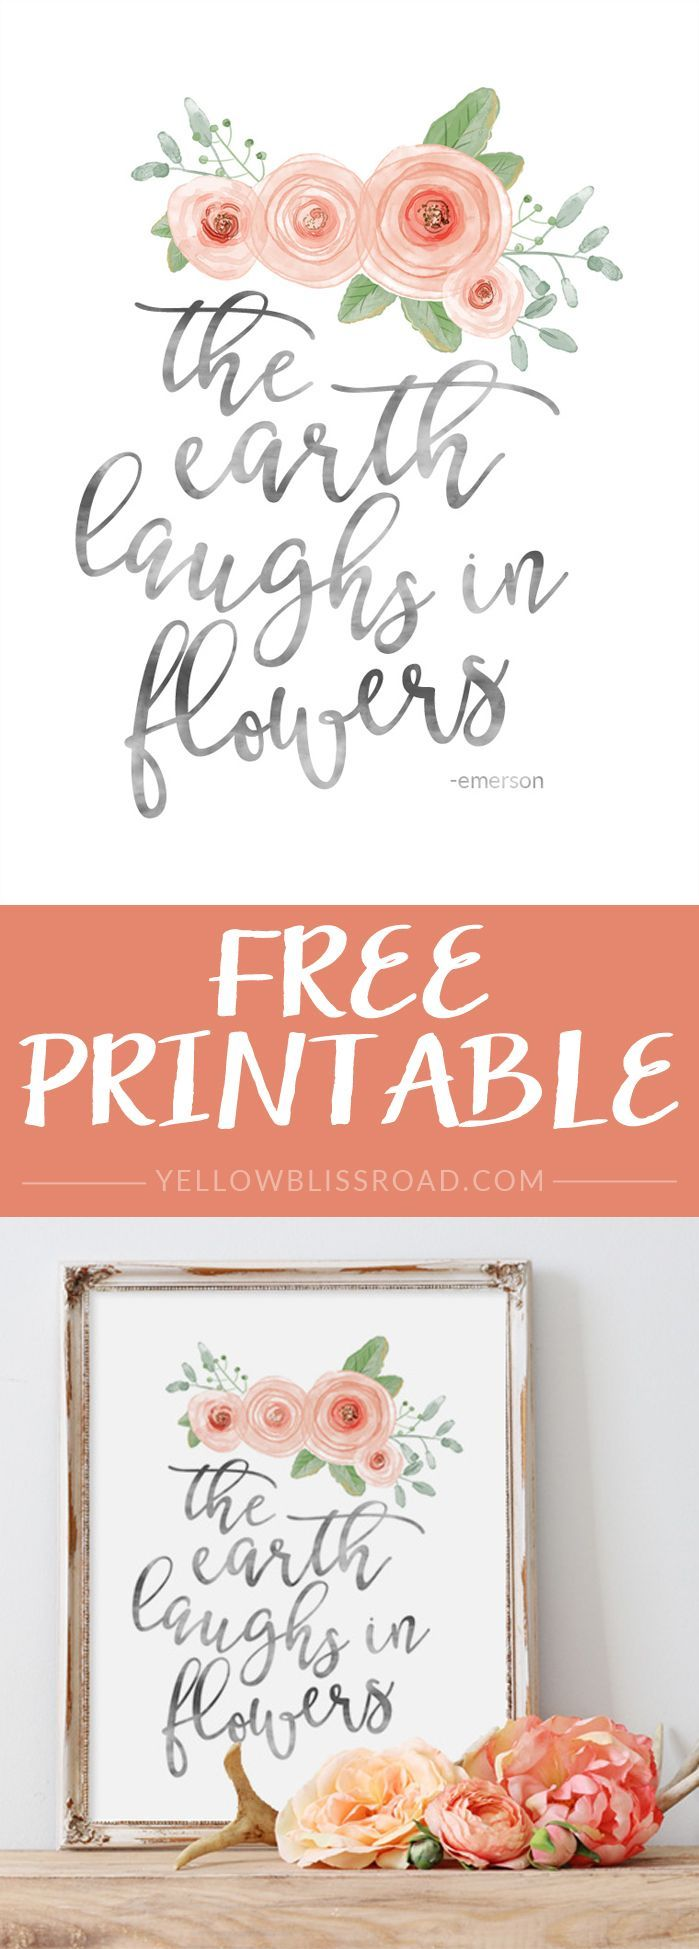 Free Spring Printable - The Earth Laughs in Flowers